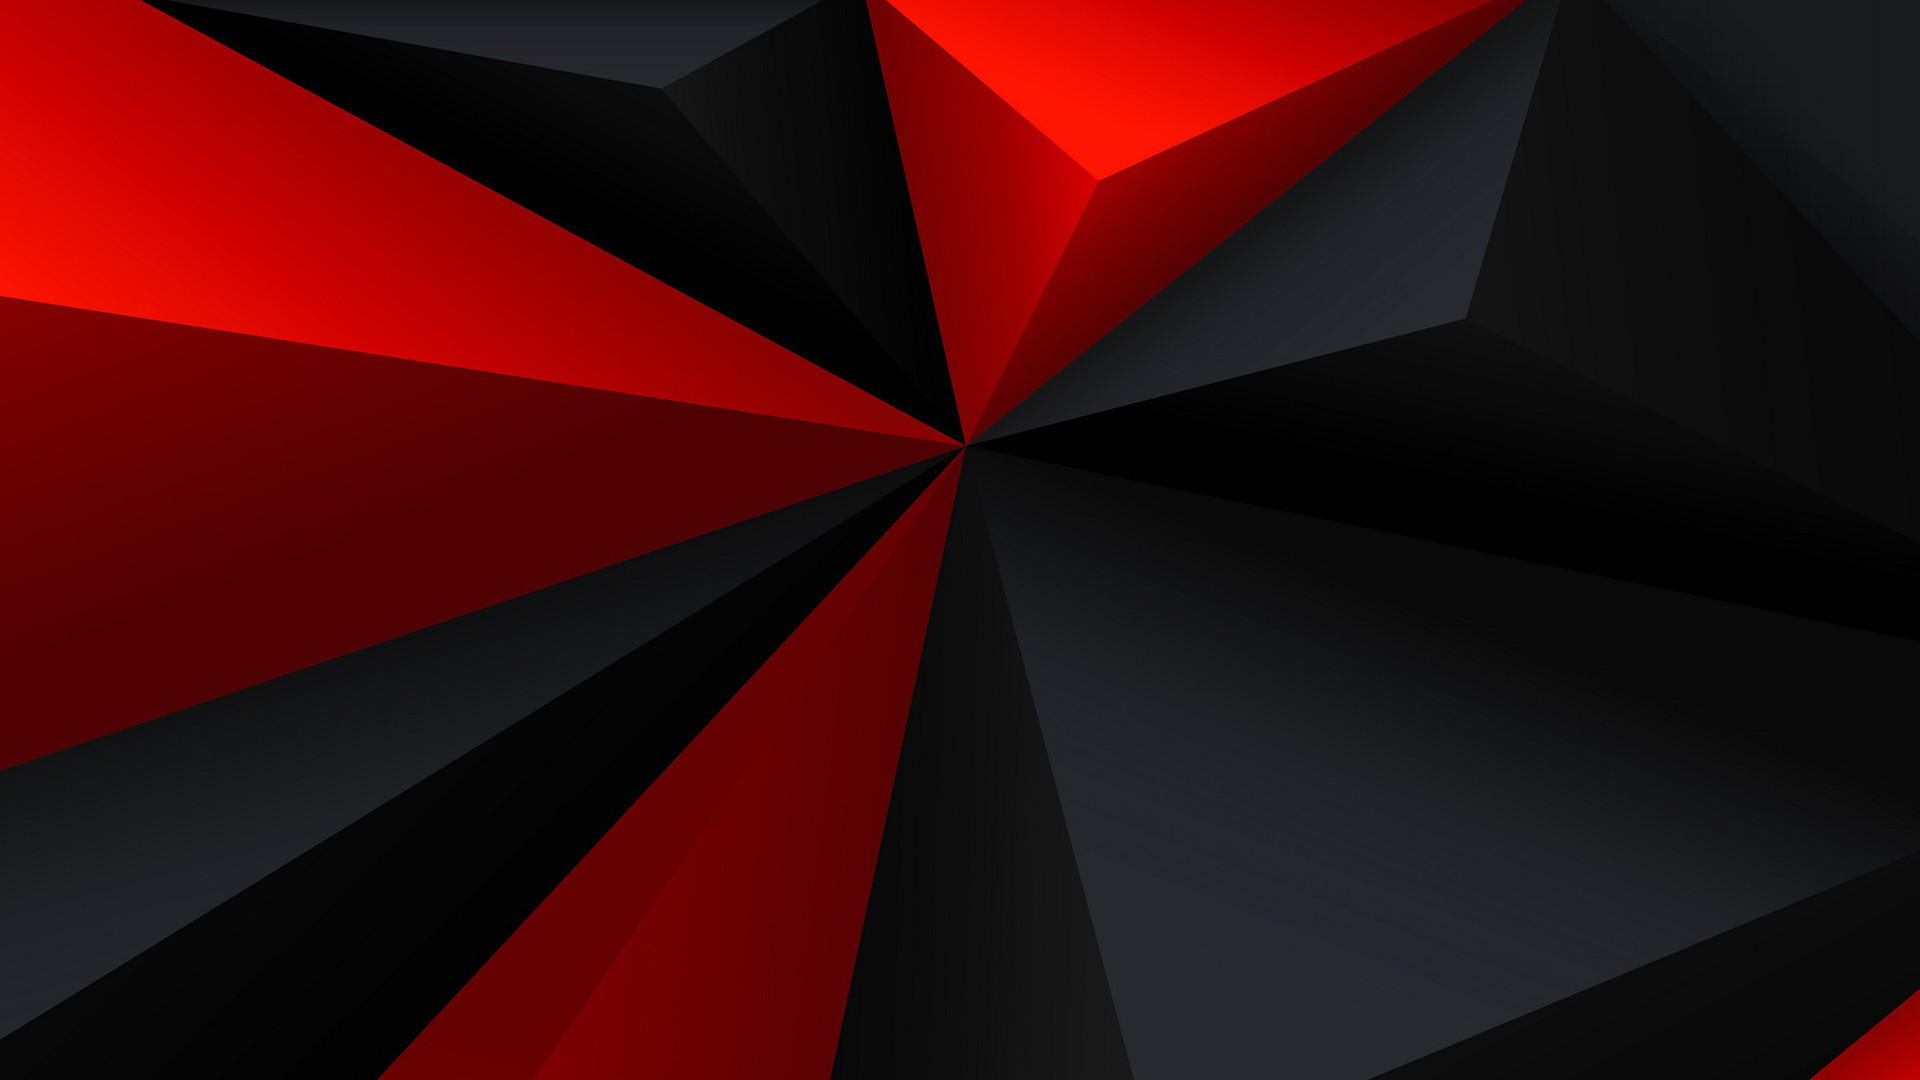 222695 red and black wallpaper